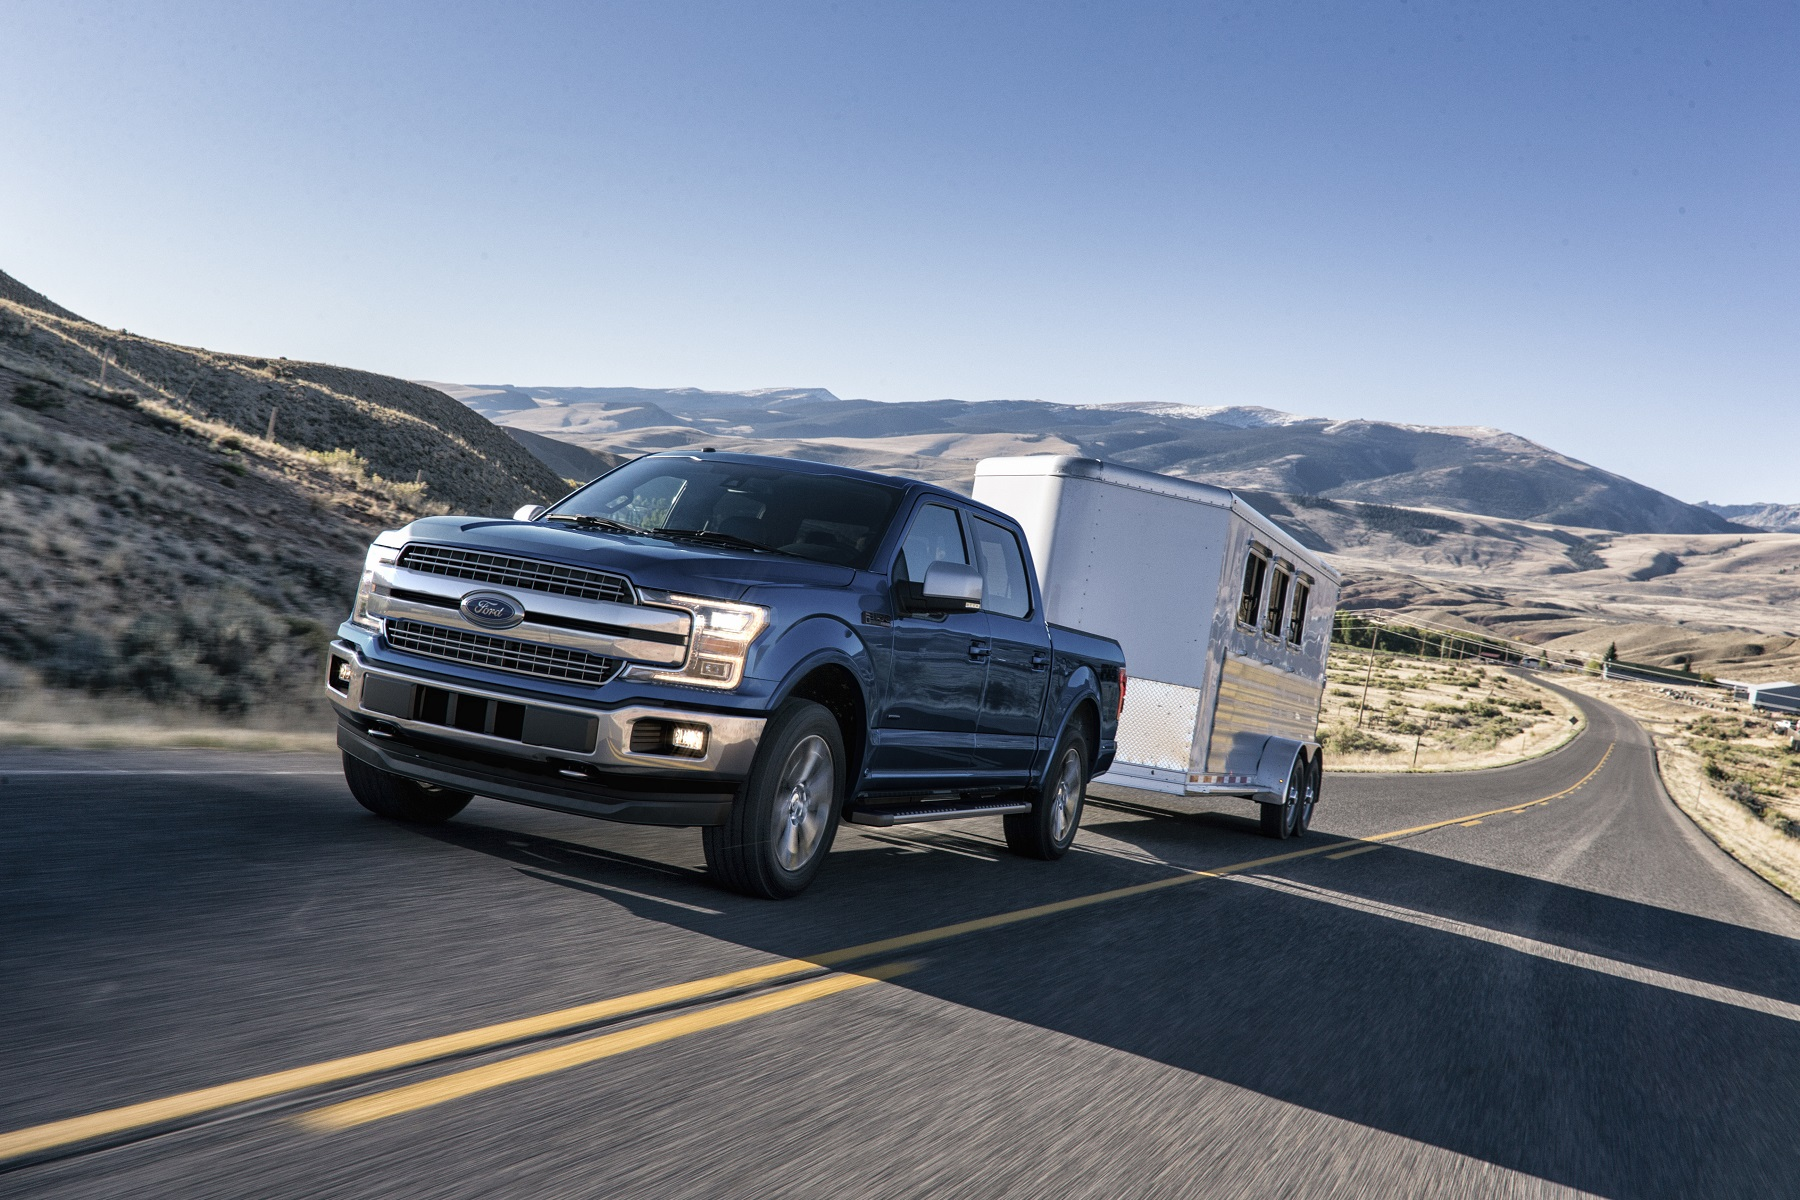 Manufacturer photo: The 2018 F-150 arrives with bold new front and rear styling, advanced technologies and improved engines